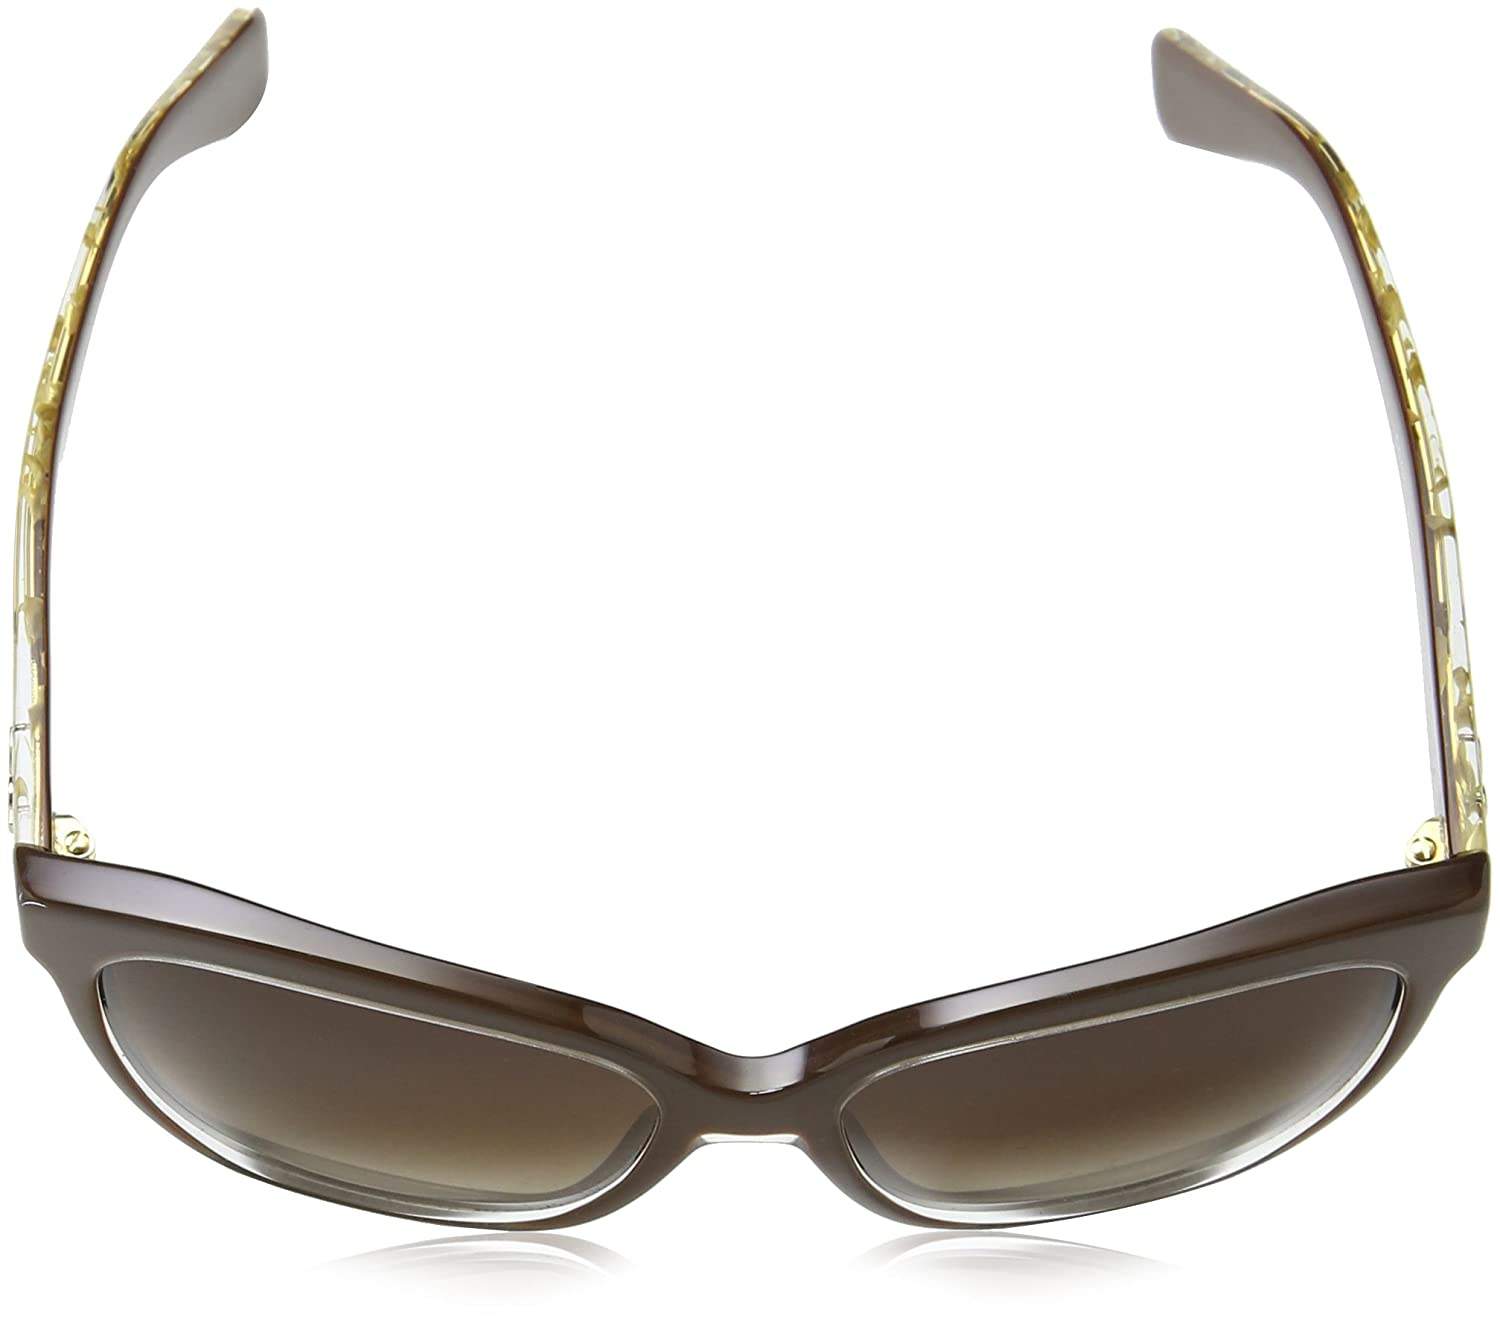 6b956bf606 Dolce & Gabbana - Gafas de sol Mod.4251 para mujer: Amazon.co.uk: Clothing